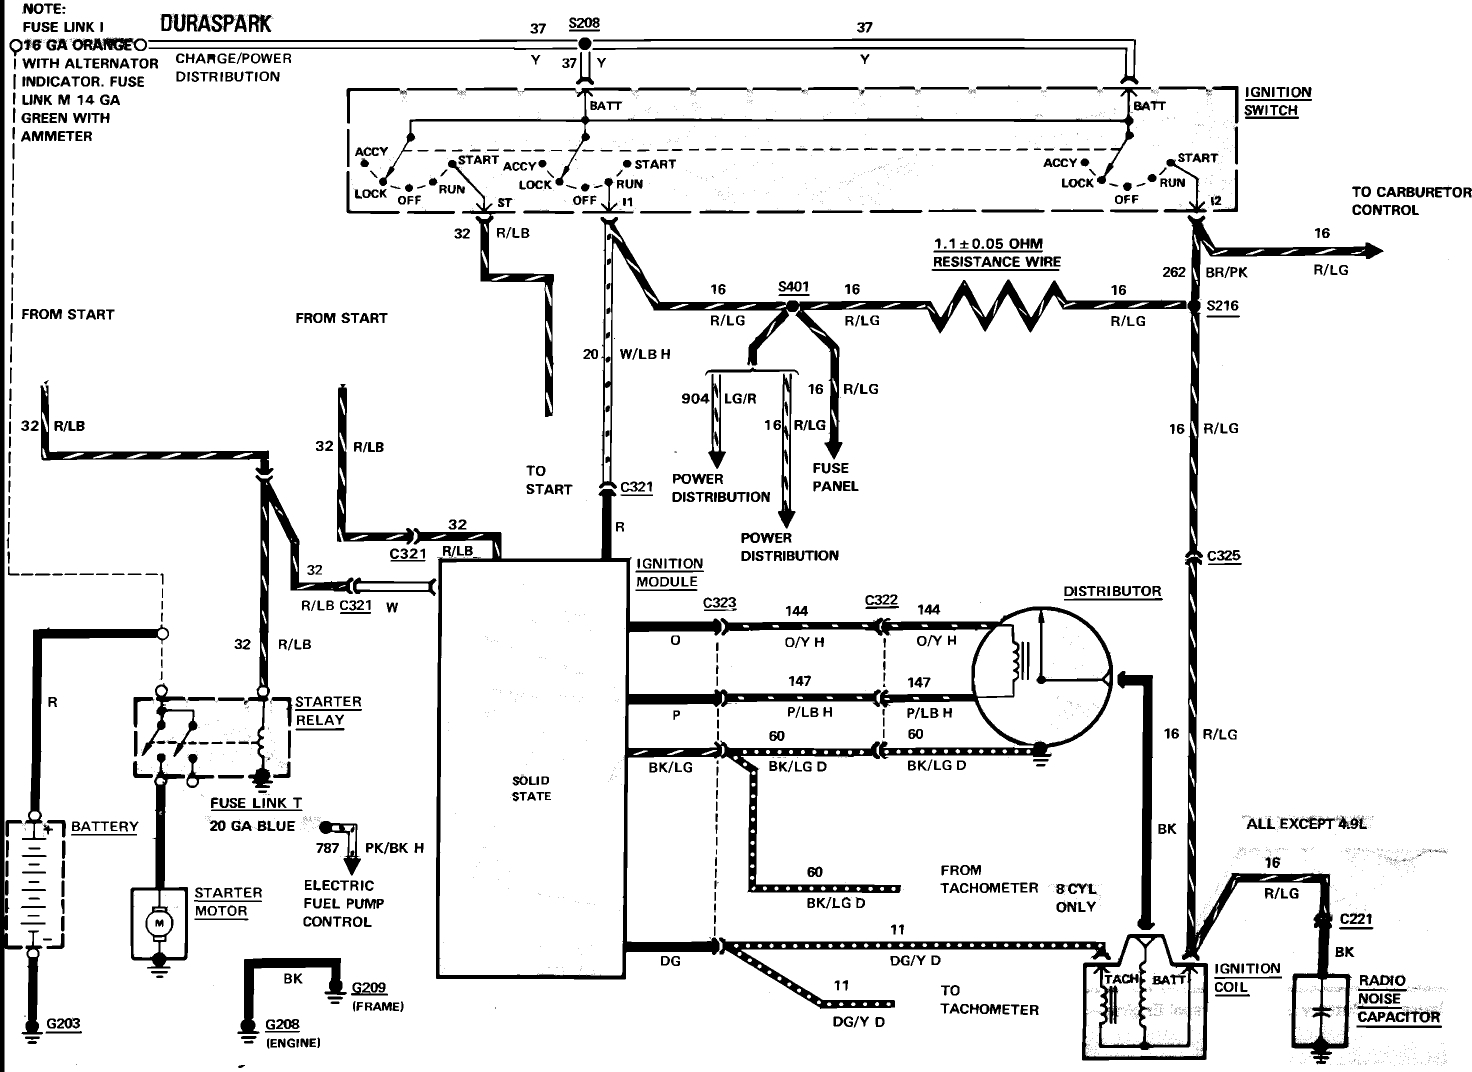 1998 chevy silverado electrical diagram